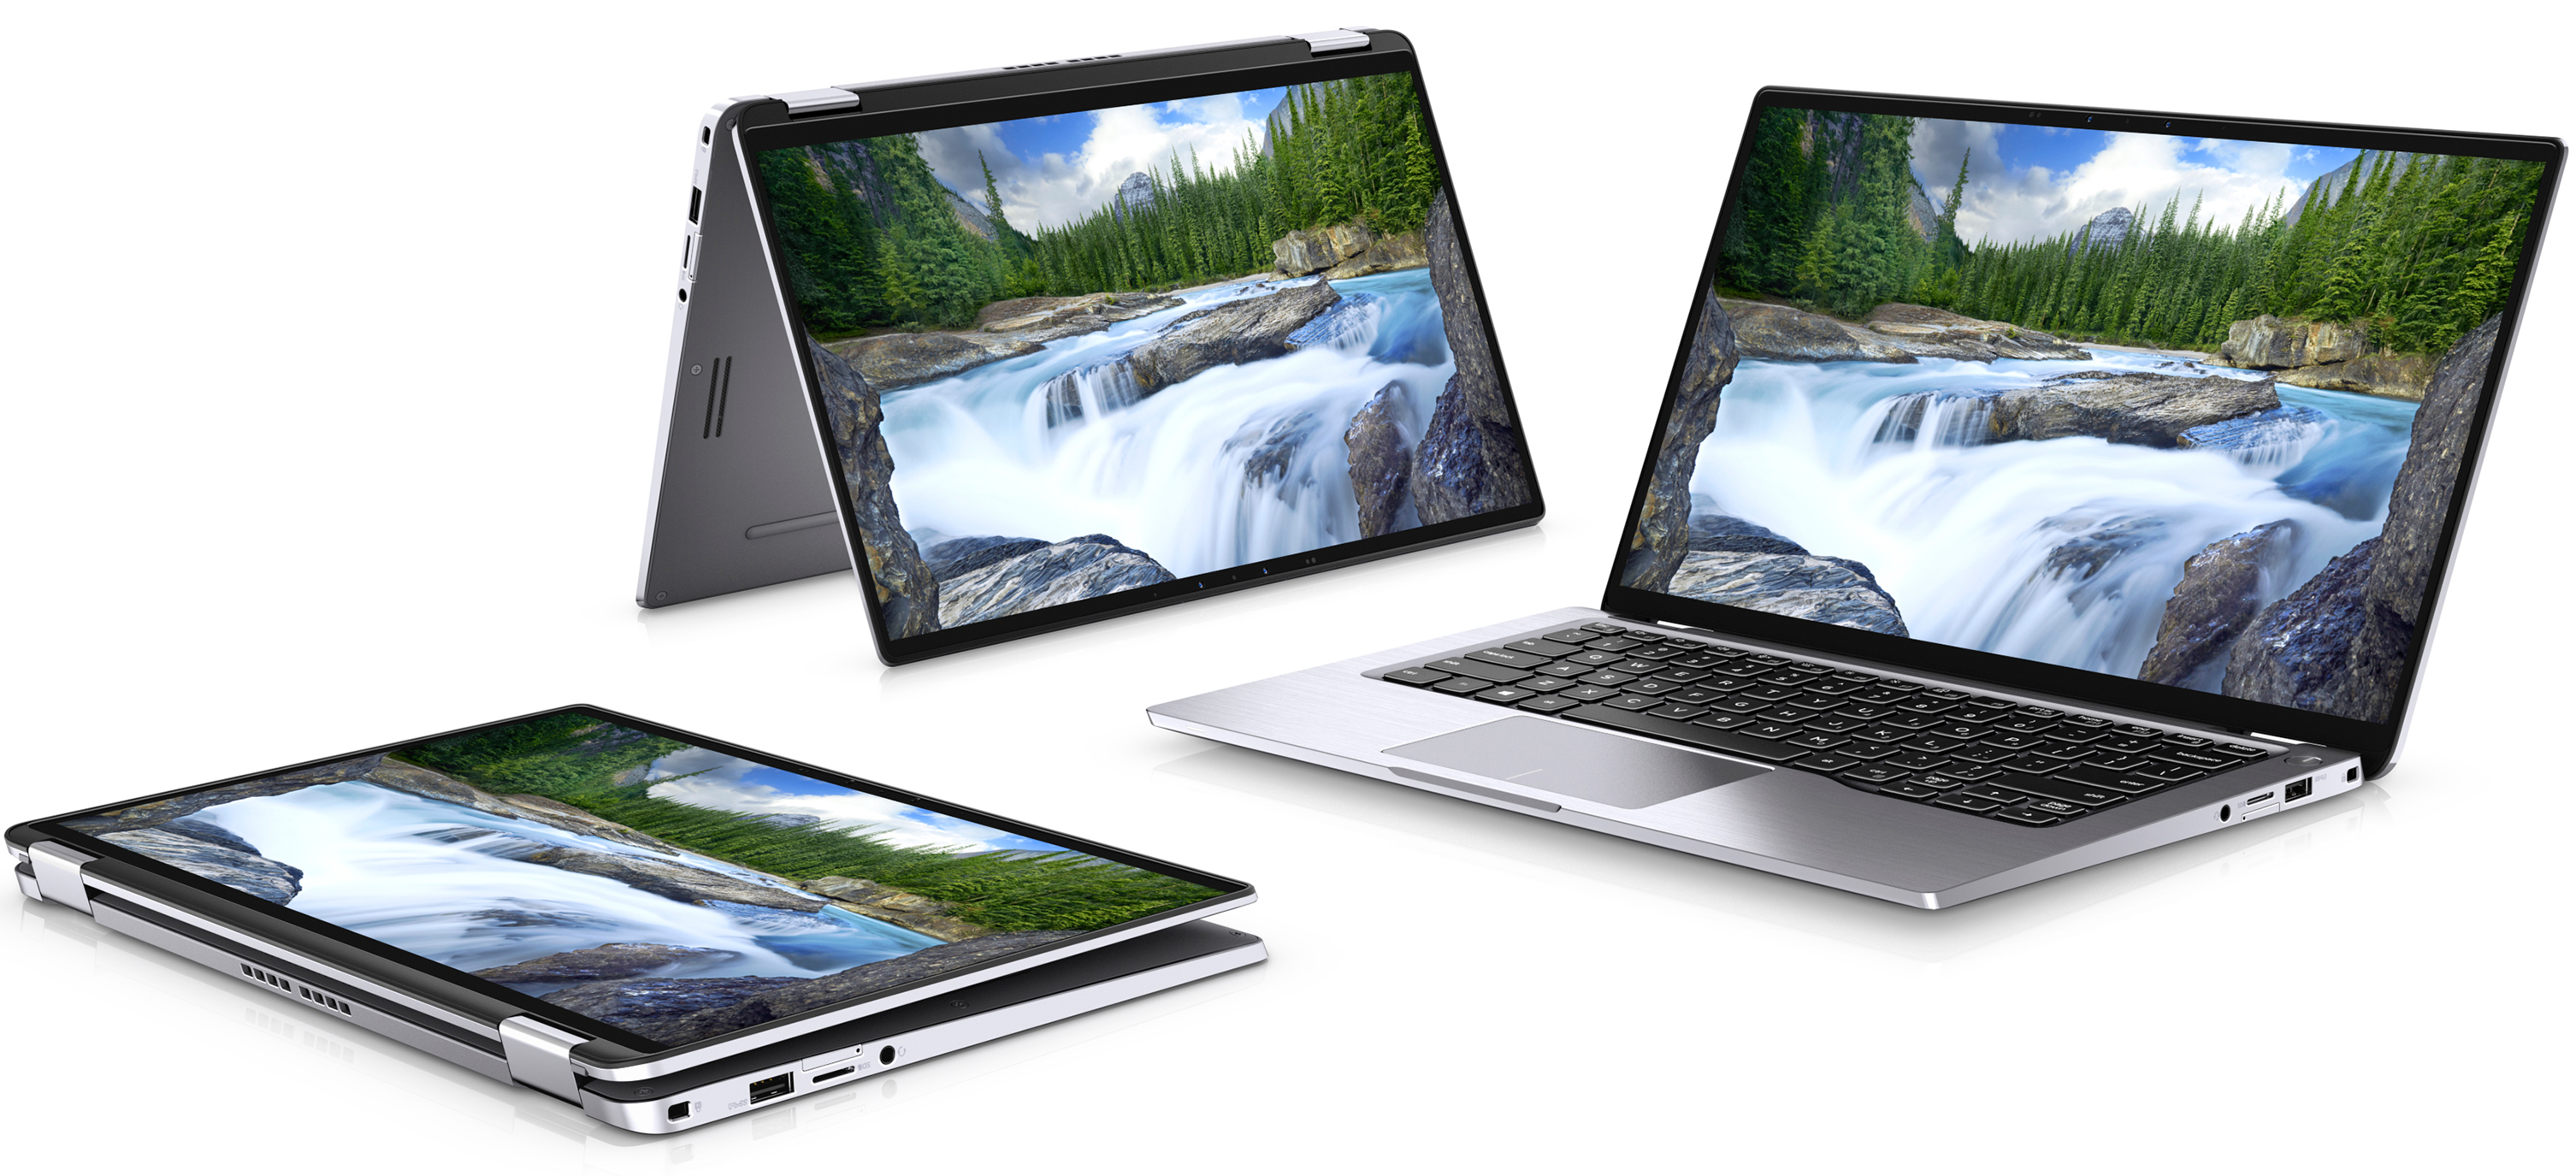 Dell at CES 2019: Latitude 7400 2-in-1 with 24hr Battery, Optional